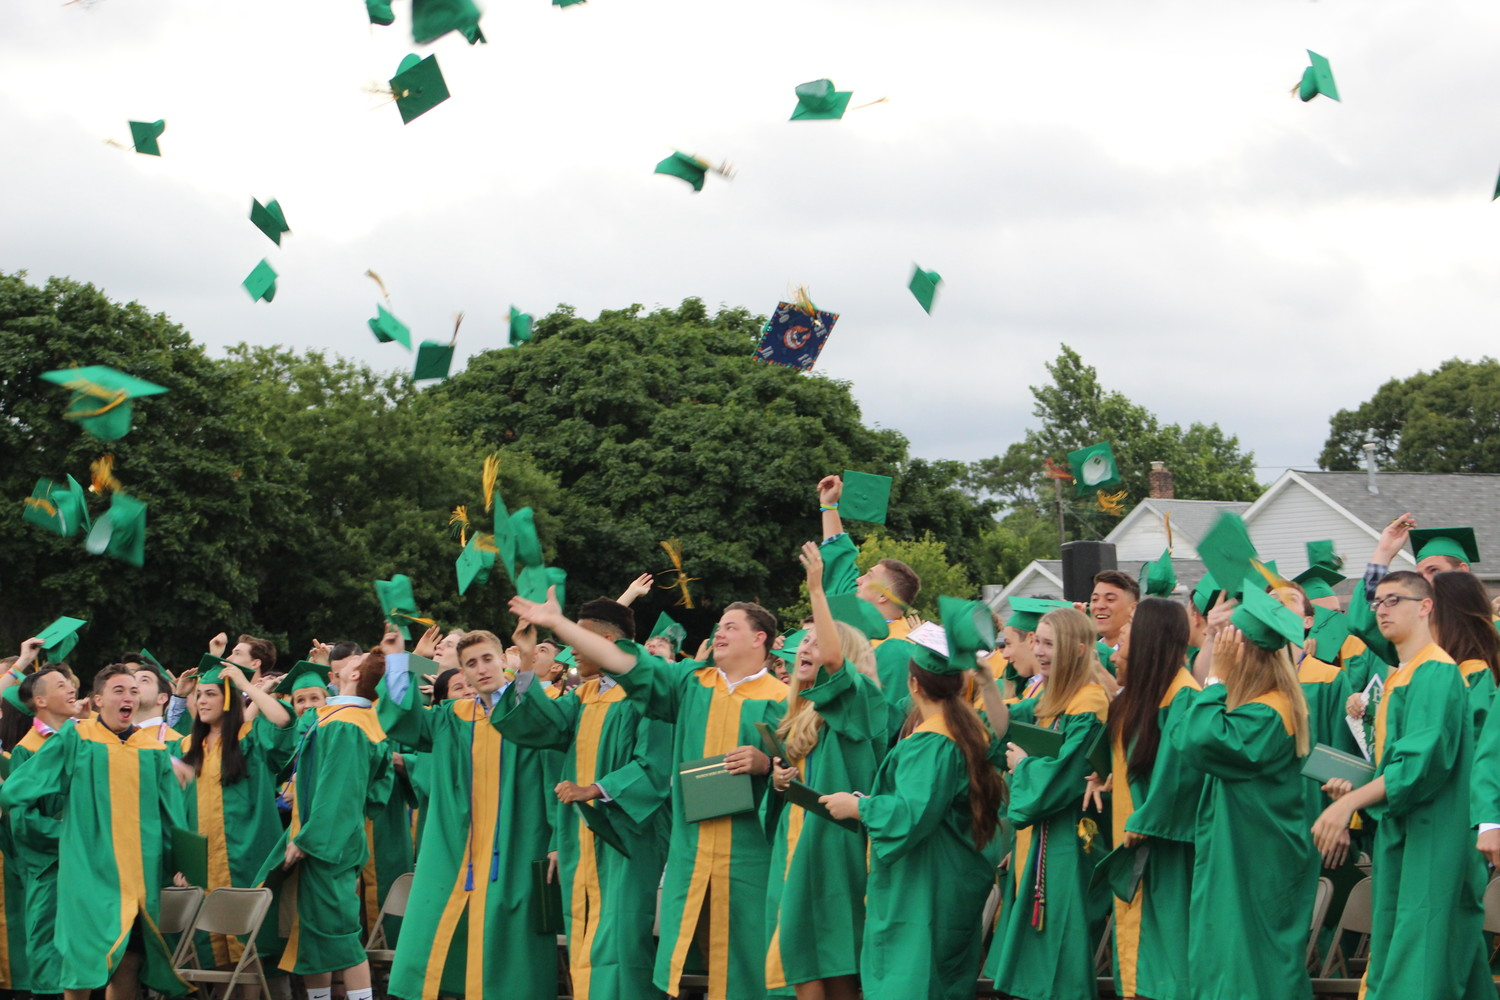 Lynbrook High School graduates tossed their mortarboards at the end of their commencement ceremony at the Marion Street football field last Friday.